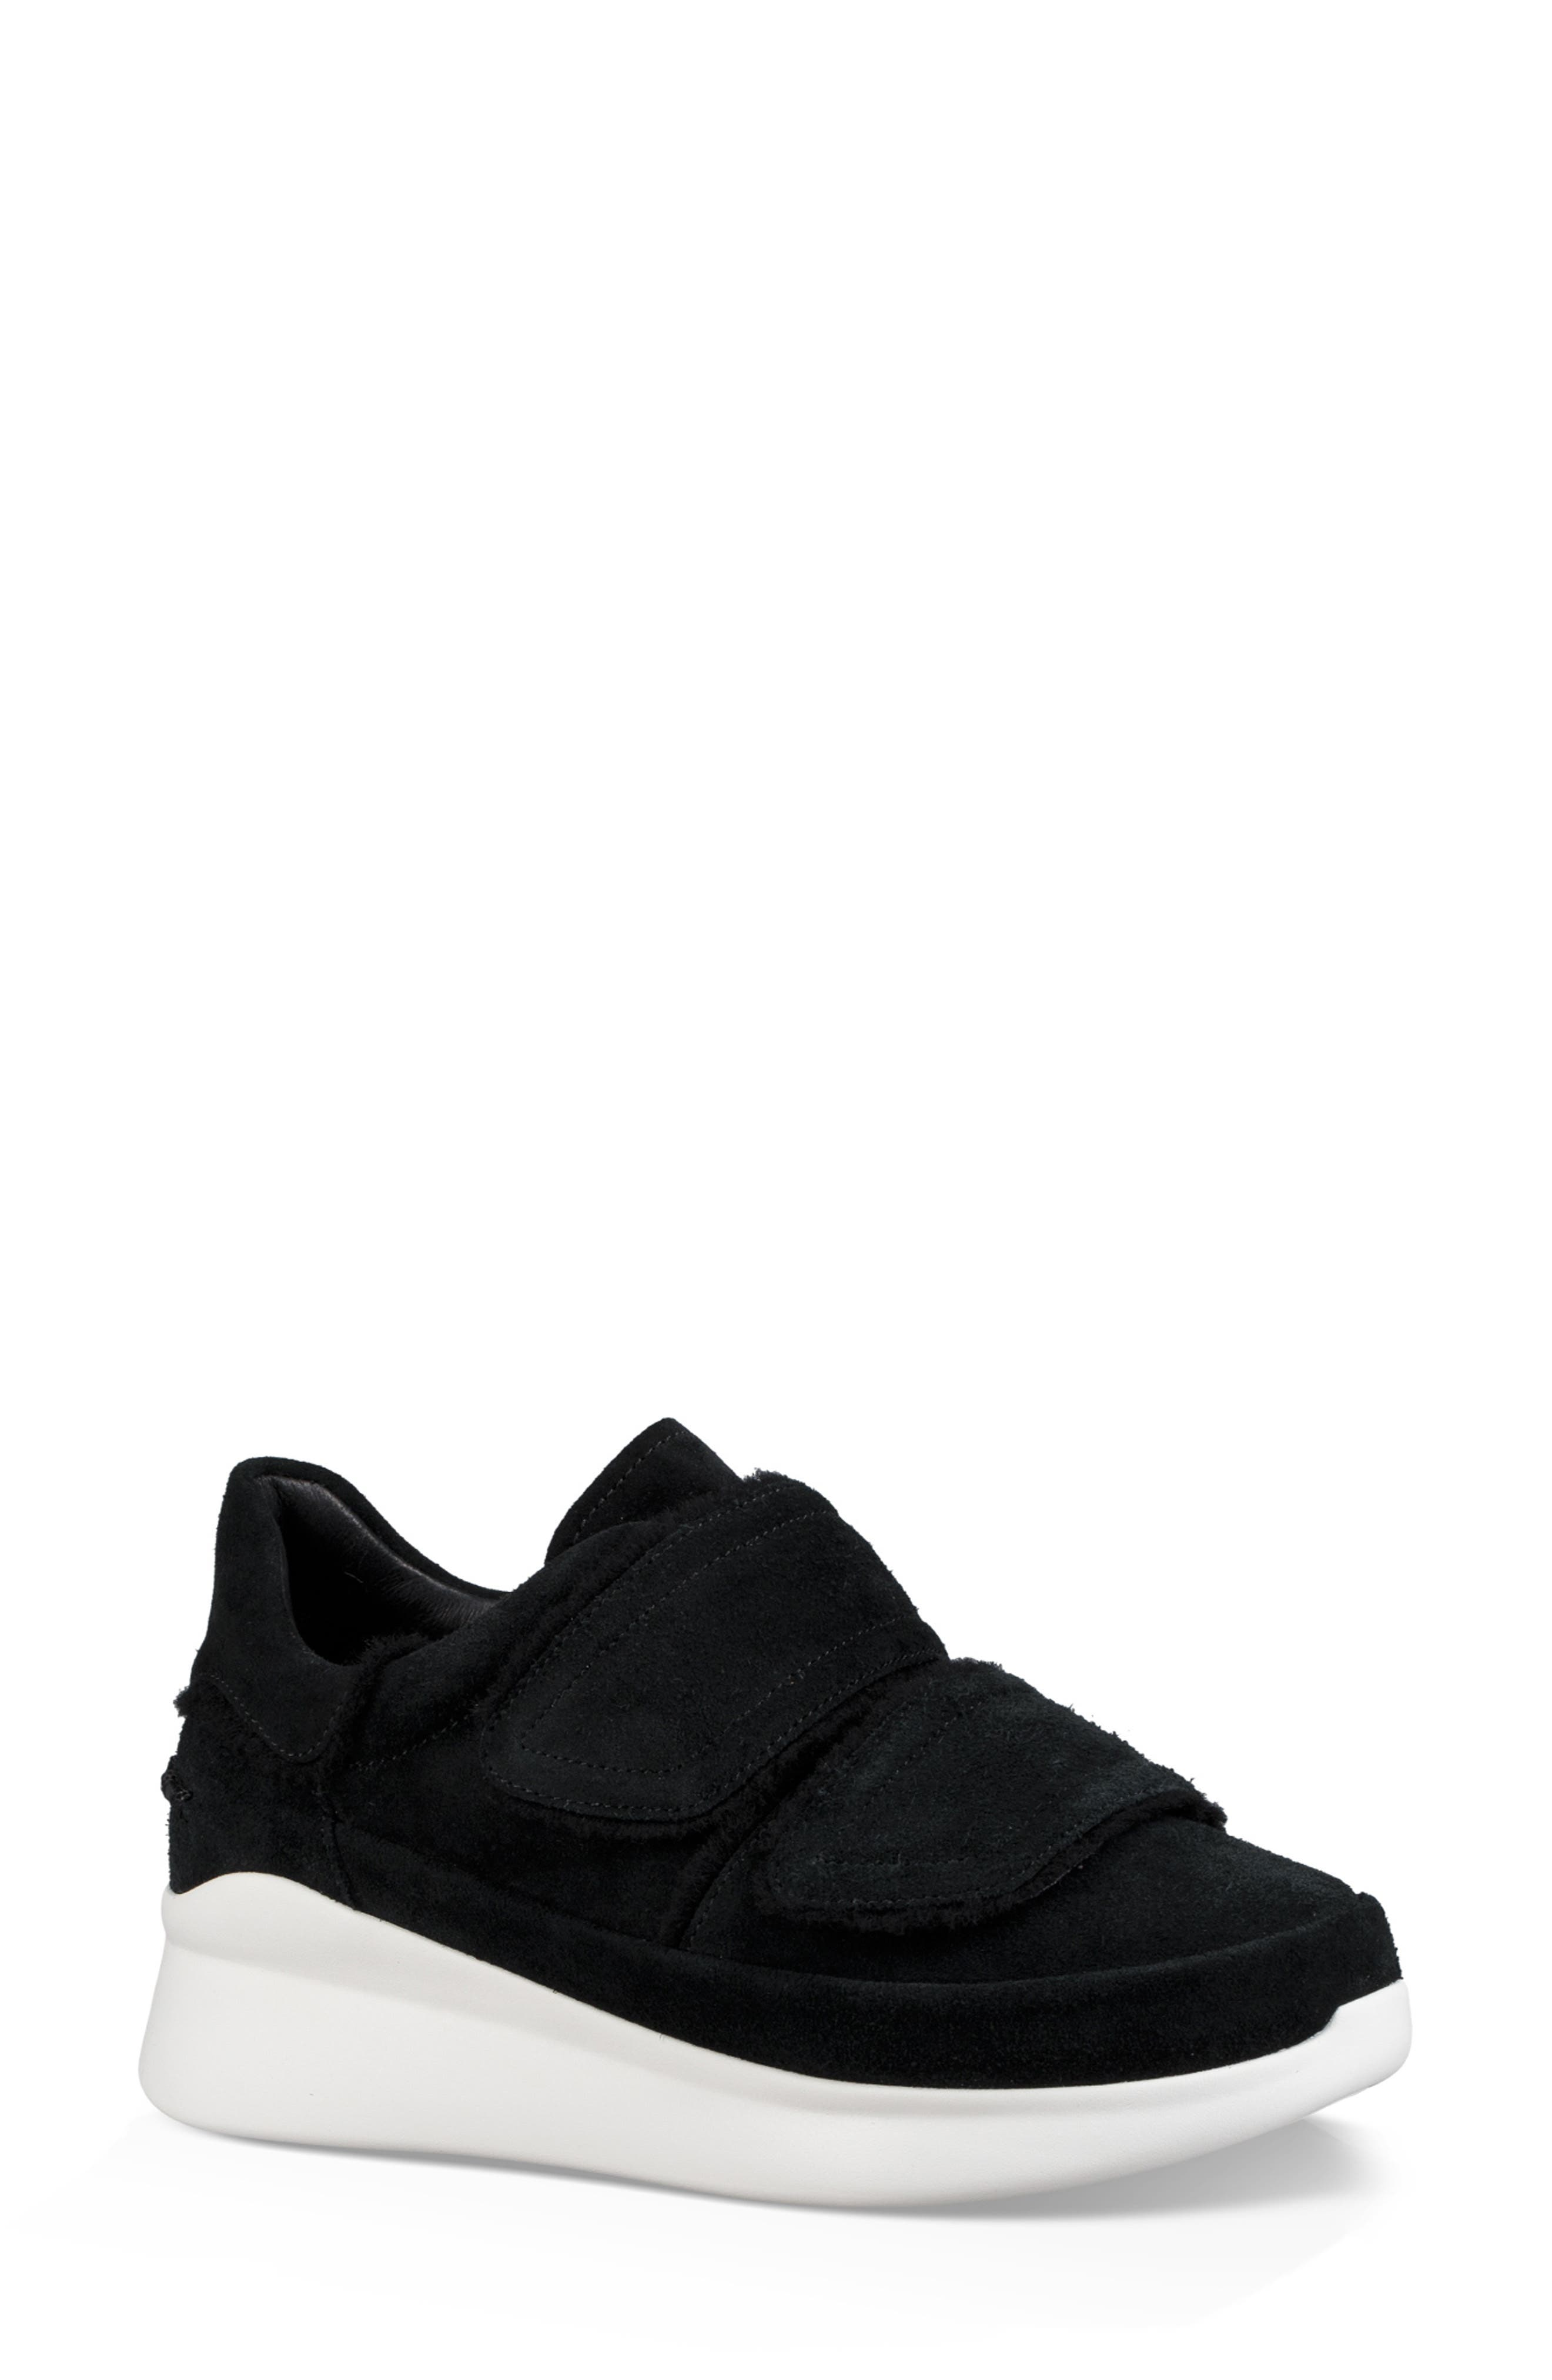 Ashby Spill Seam Sneaker,                             Main thumbnail 1, color,                             BLACK LEATHER